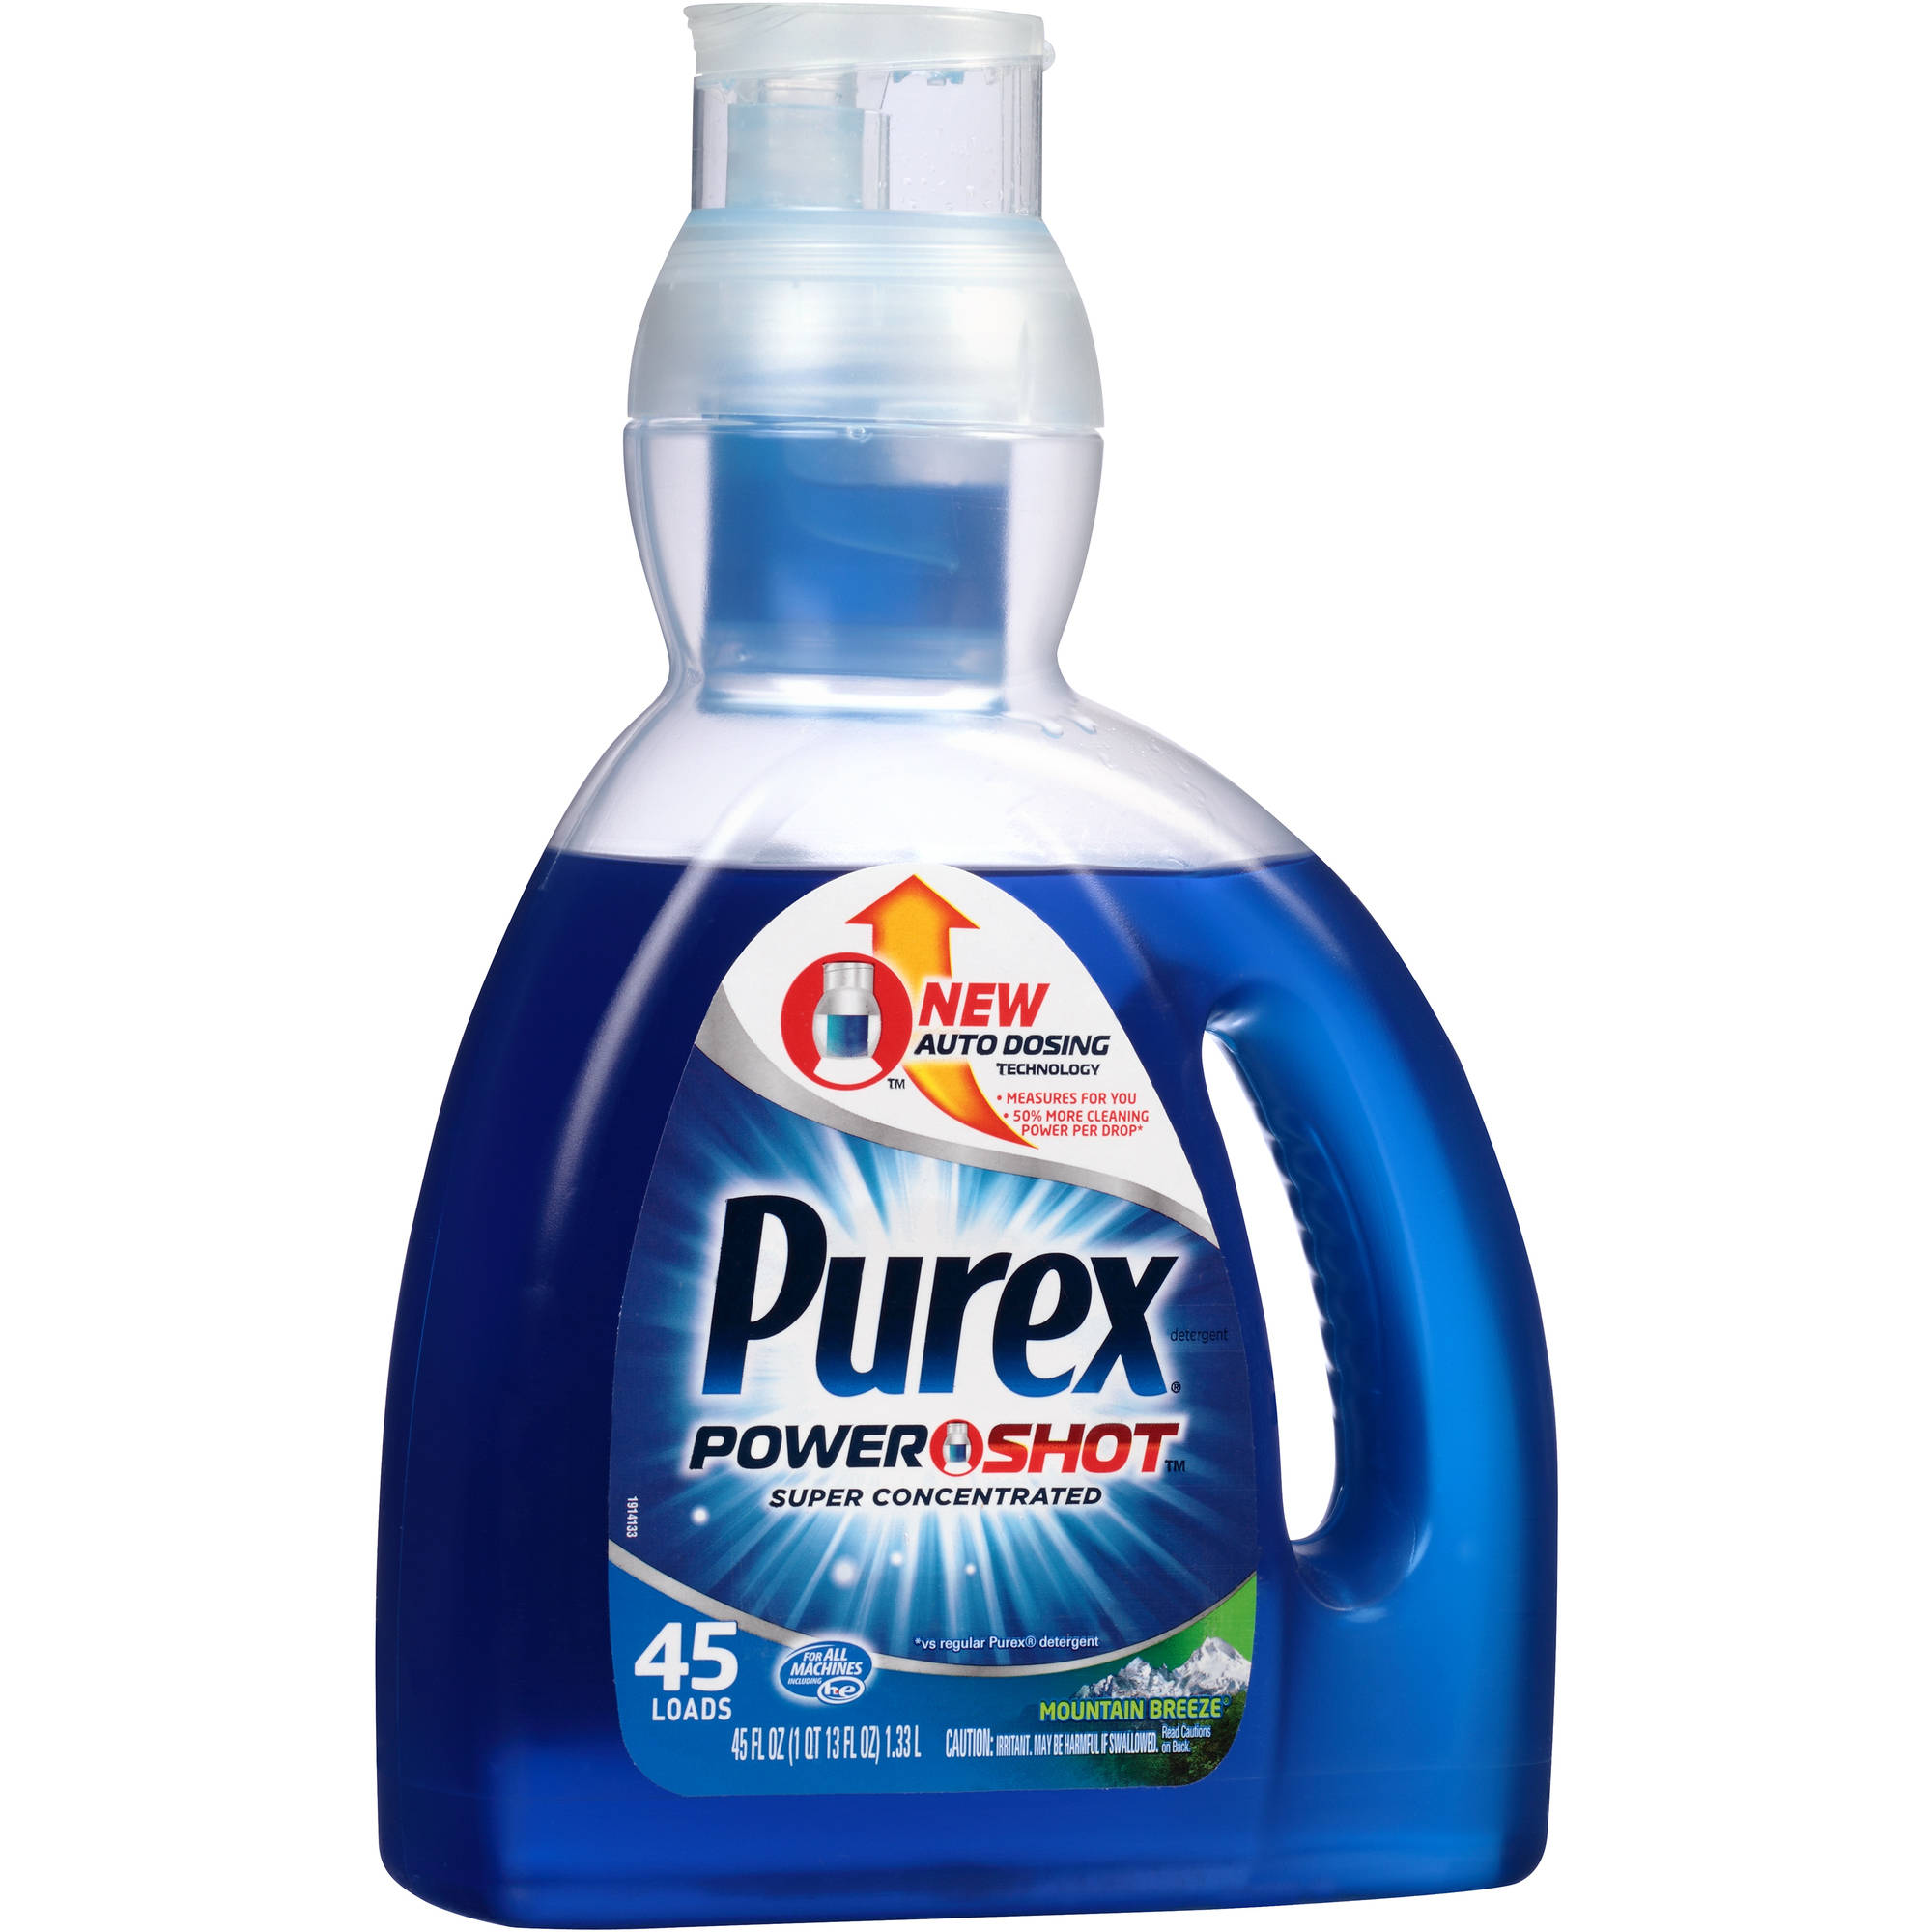 Purex PowerShot Mountain Breeze Liquid Laundry Detergent, 45 loads, 45 fl oz